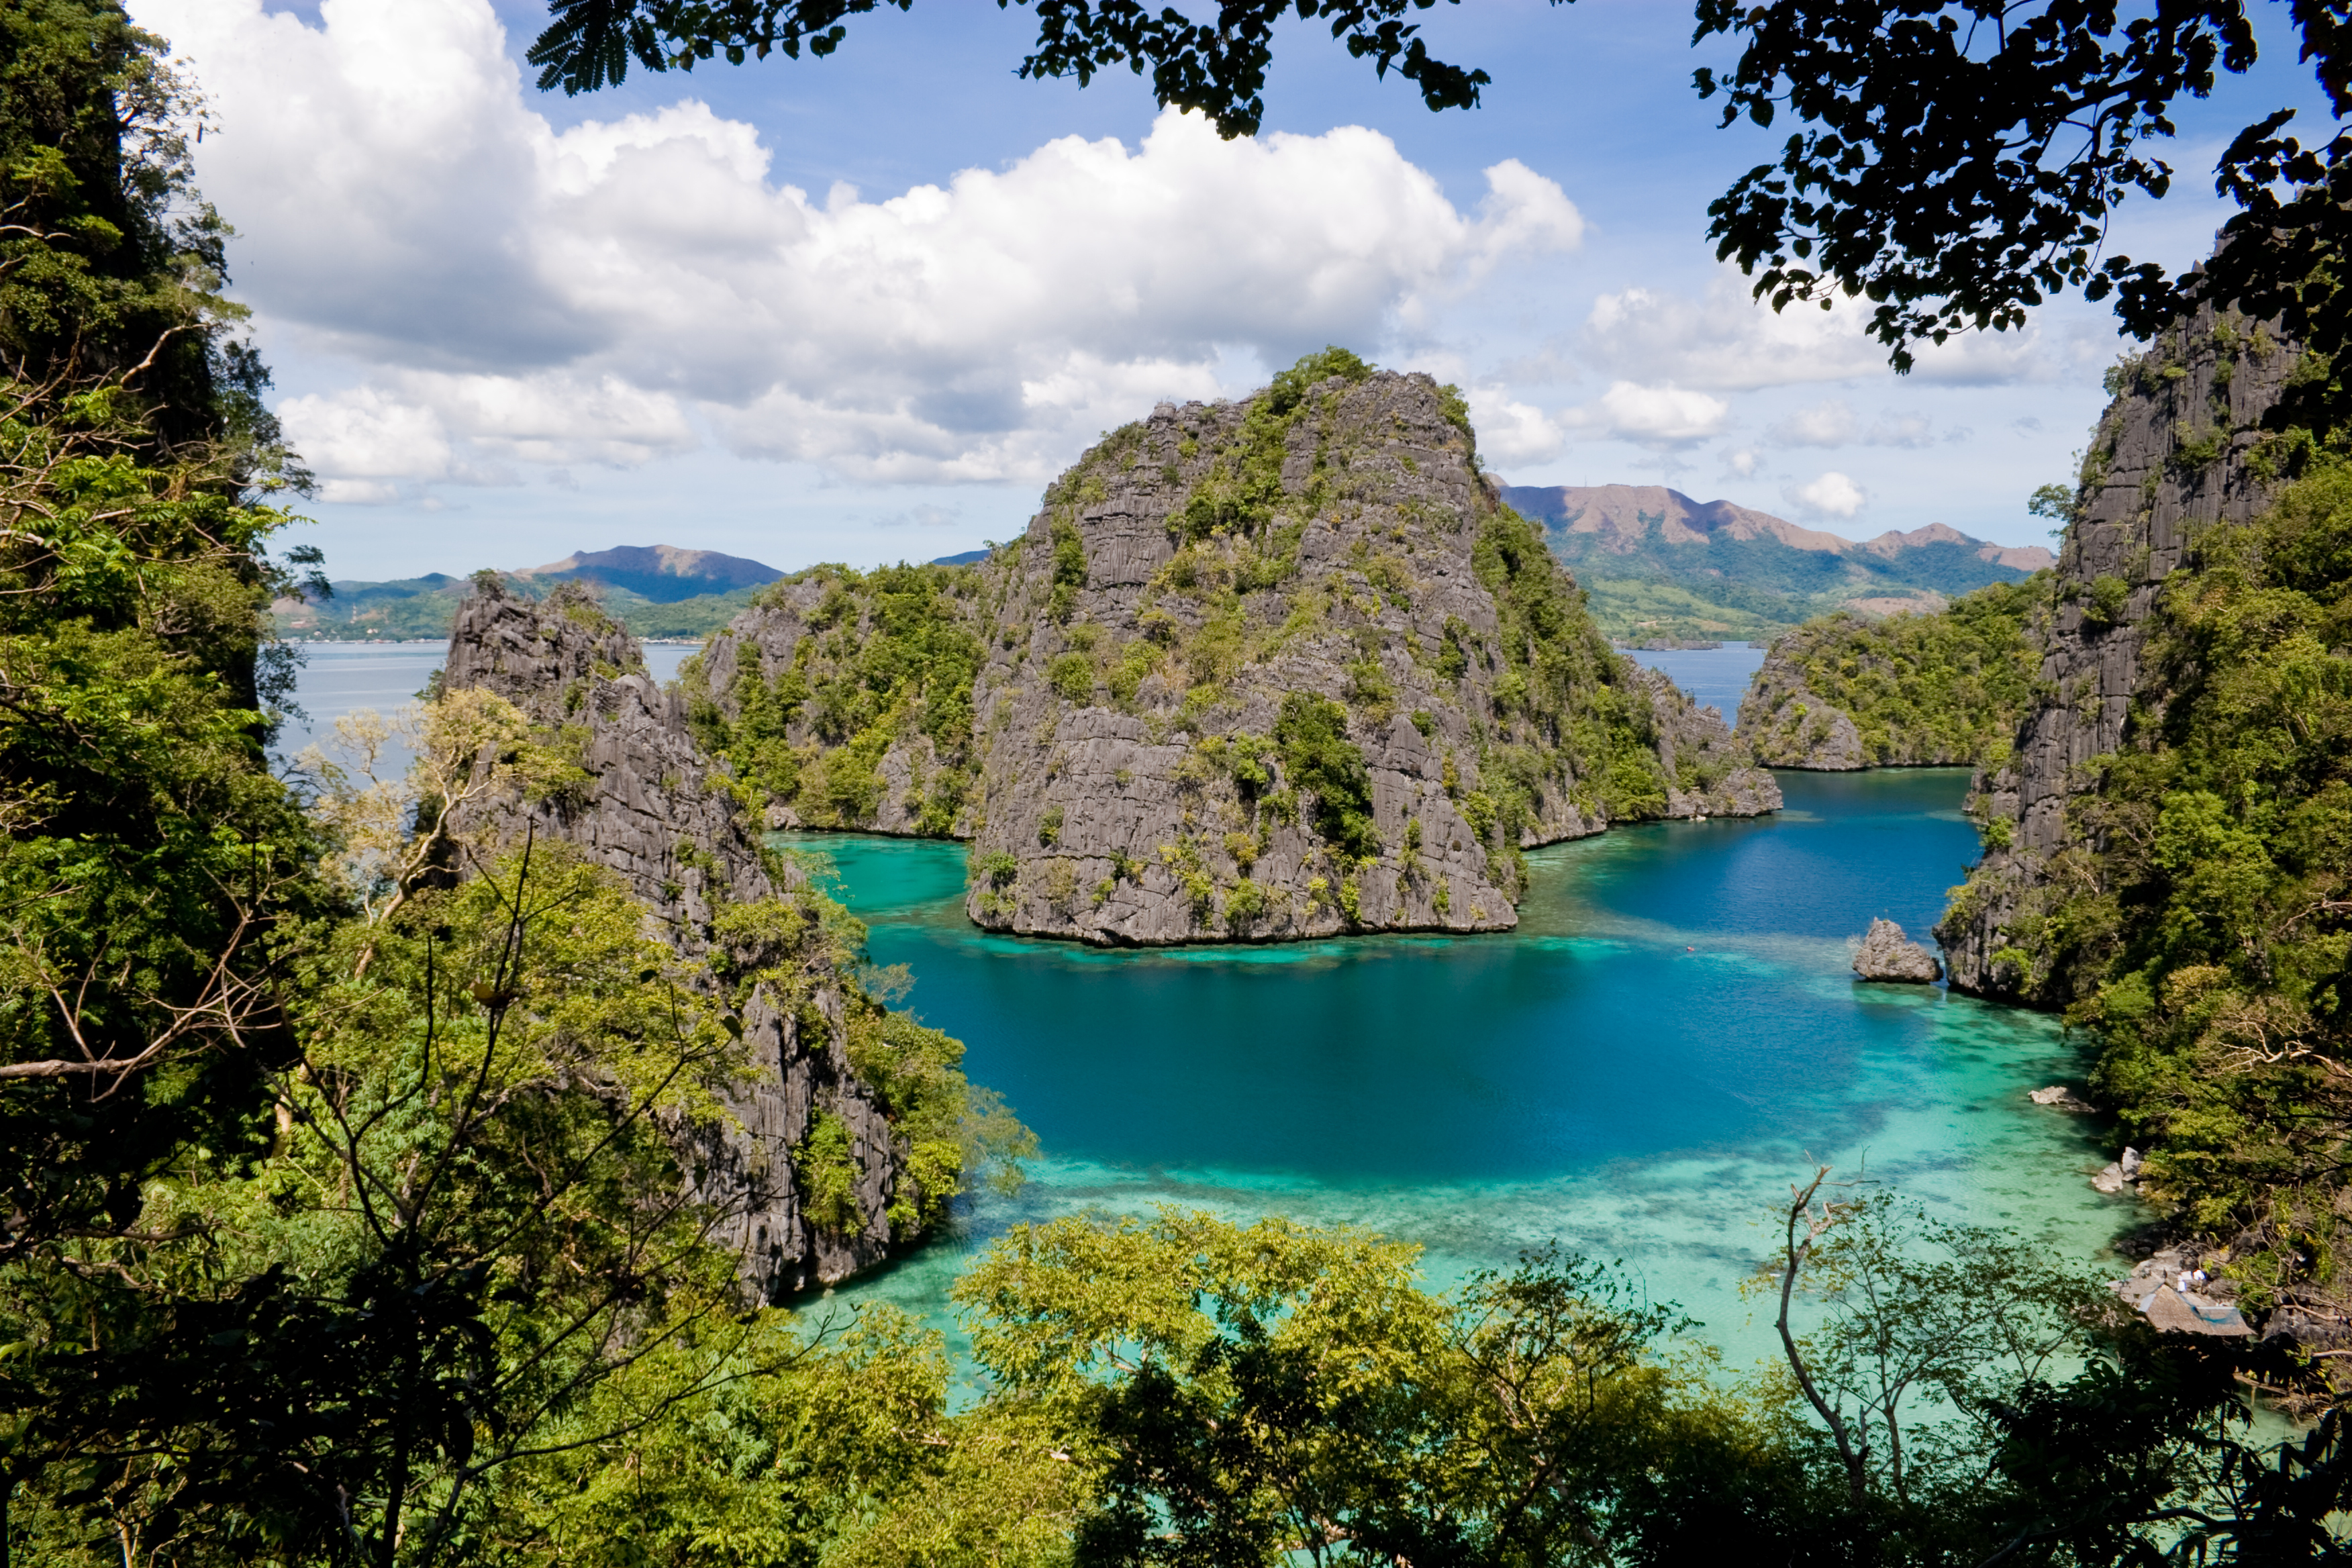 Philippines - in Asia - Sightseeing and Landmarks ...